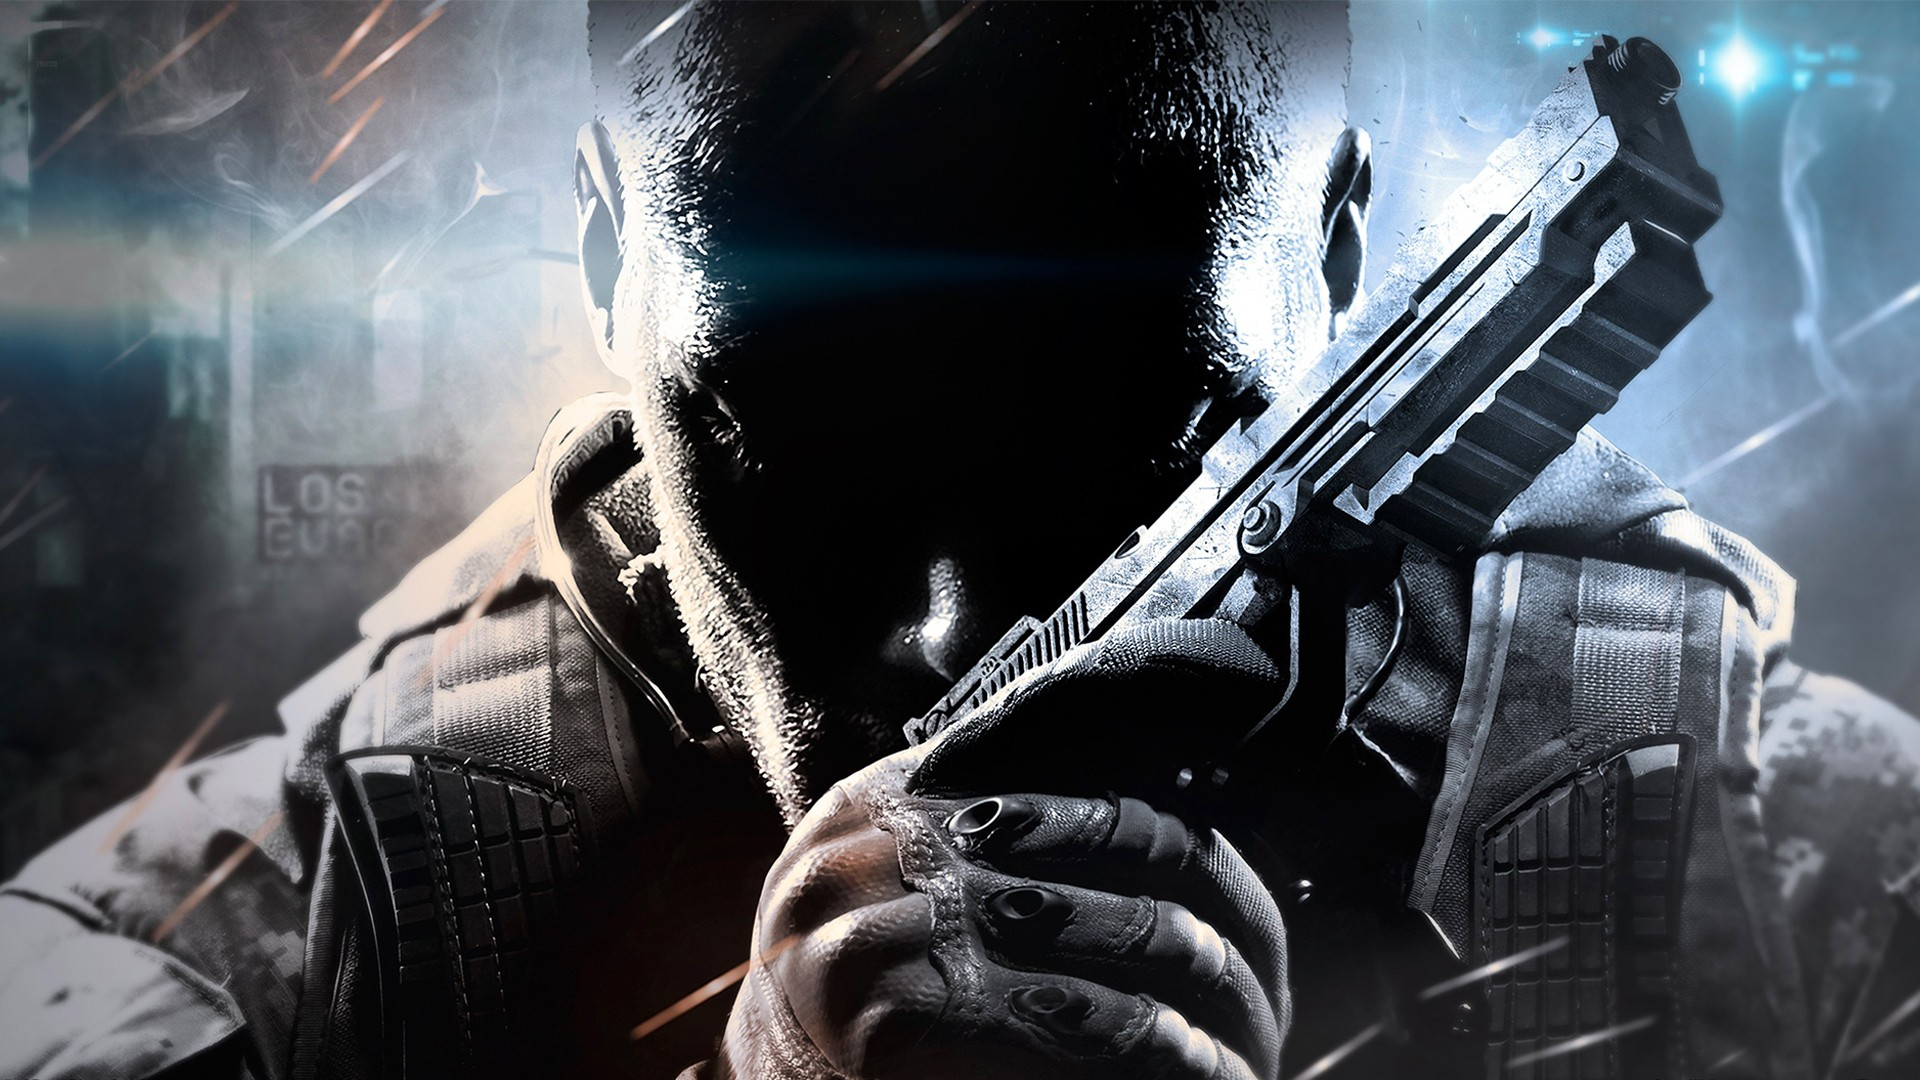 call of duty wallpaper free Download